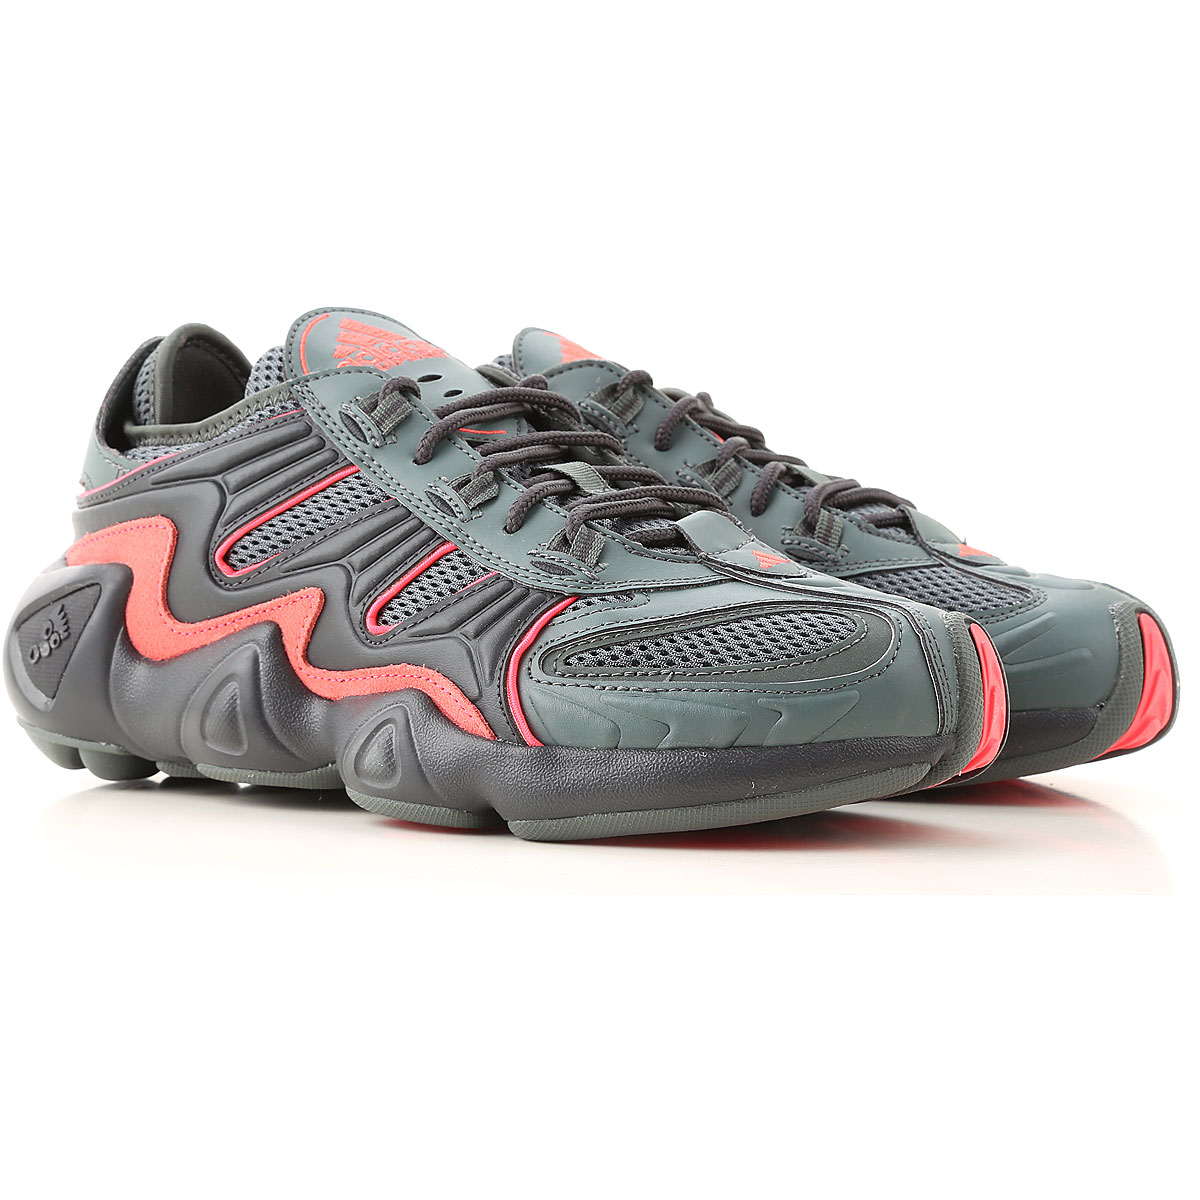 Adidas Sneakers for Men On Sale in Outlet, Carbon Black, Leather, 2019, 7